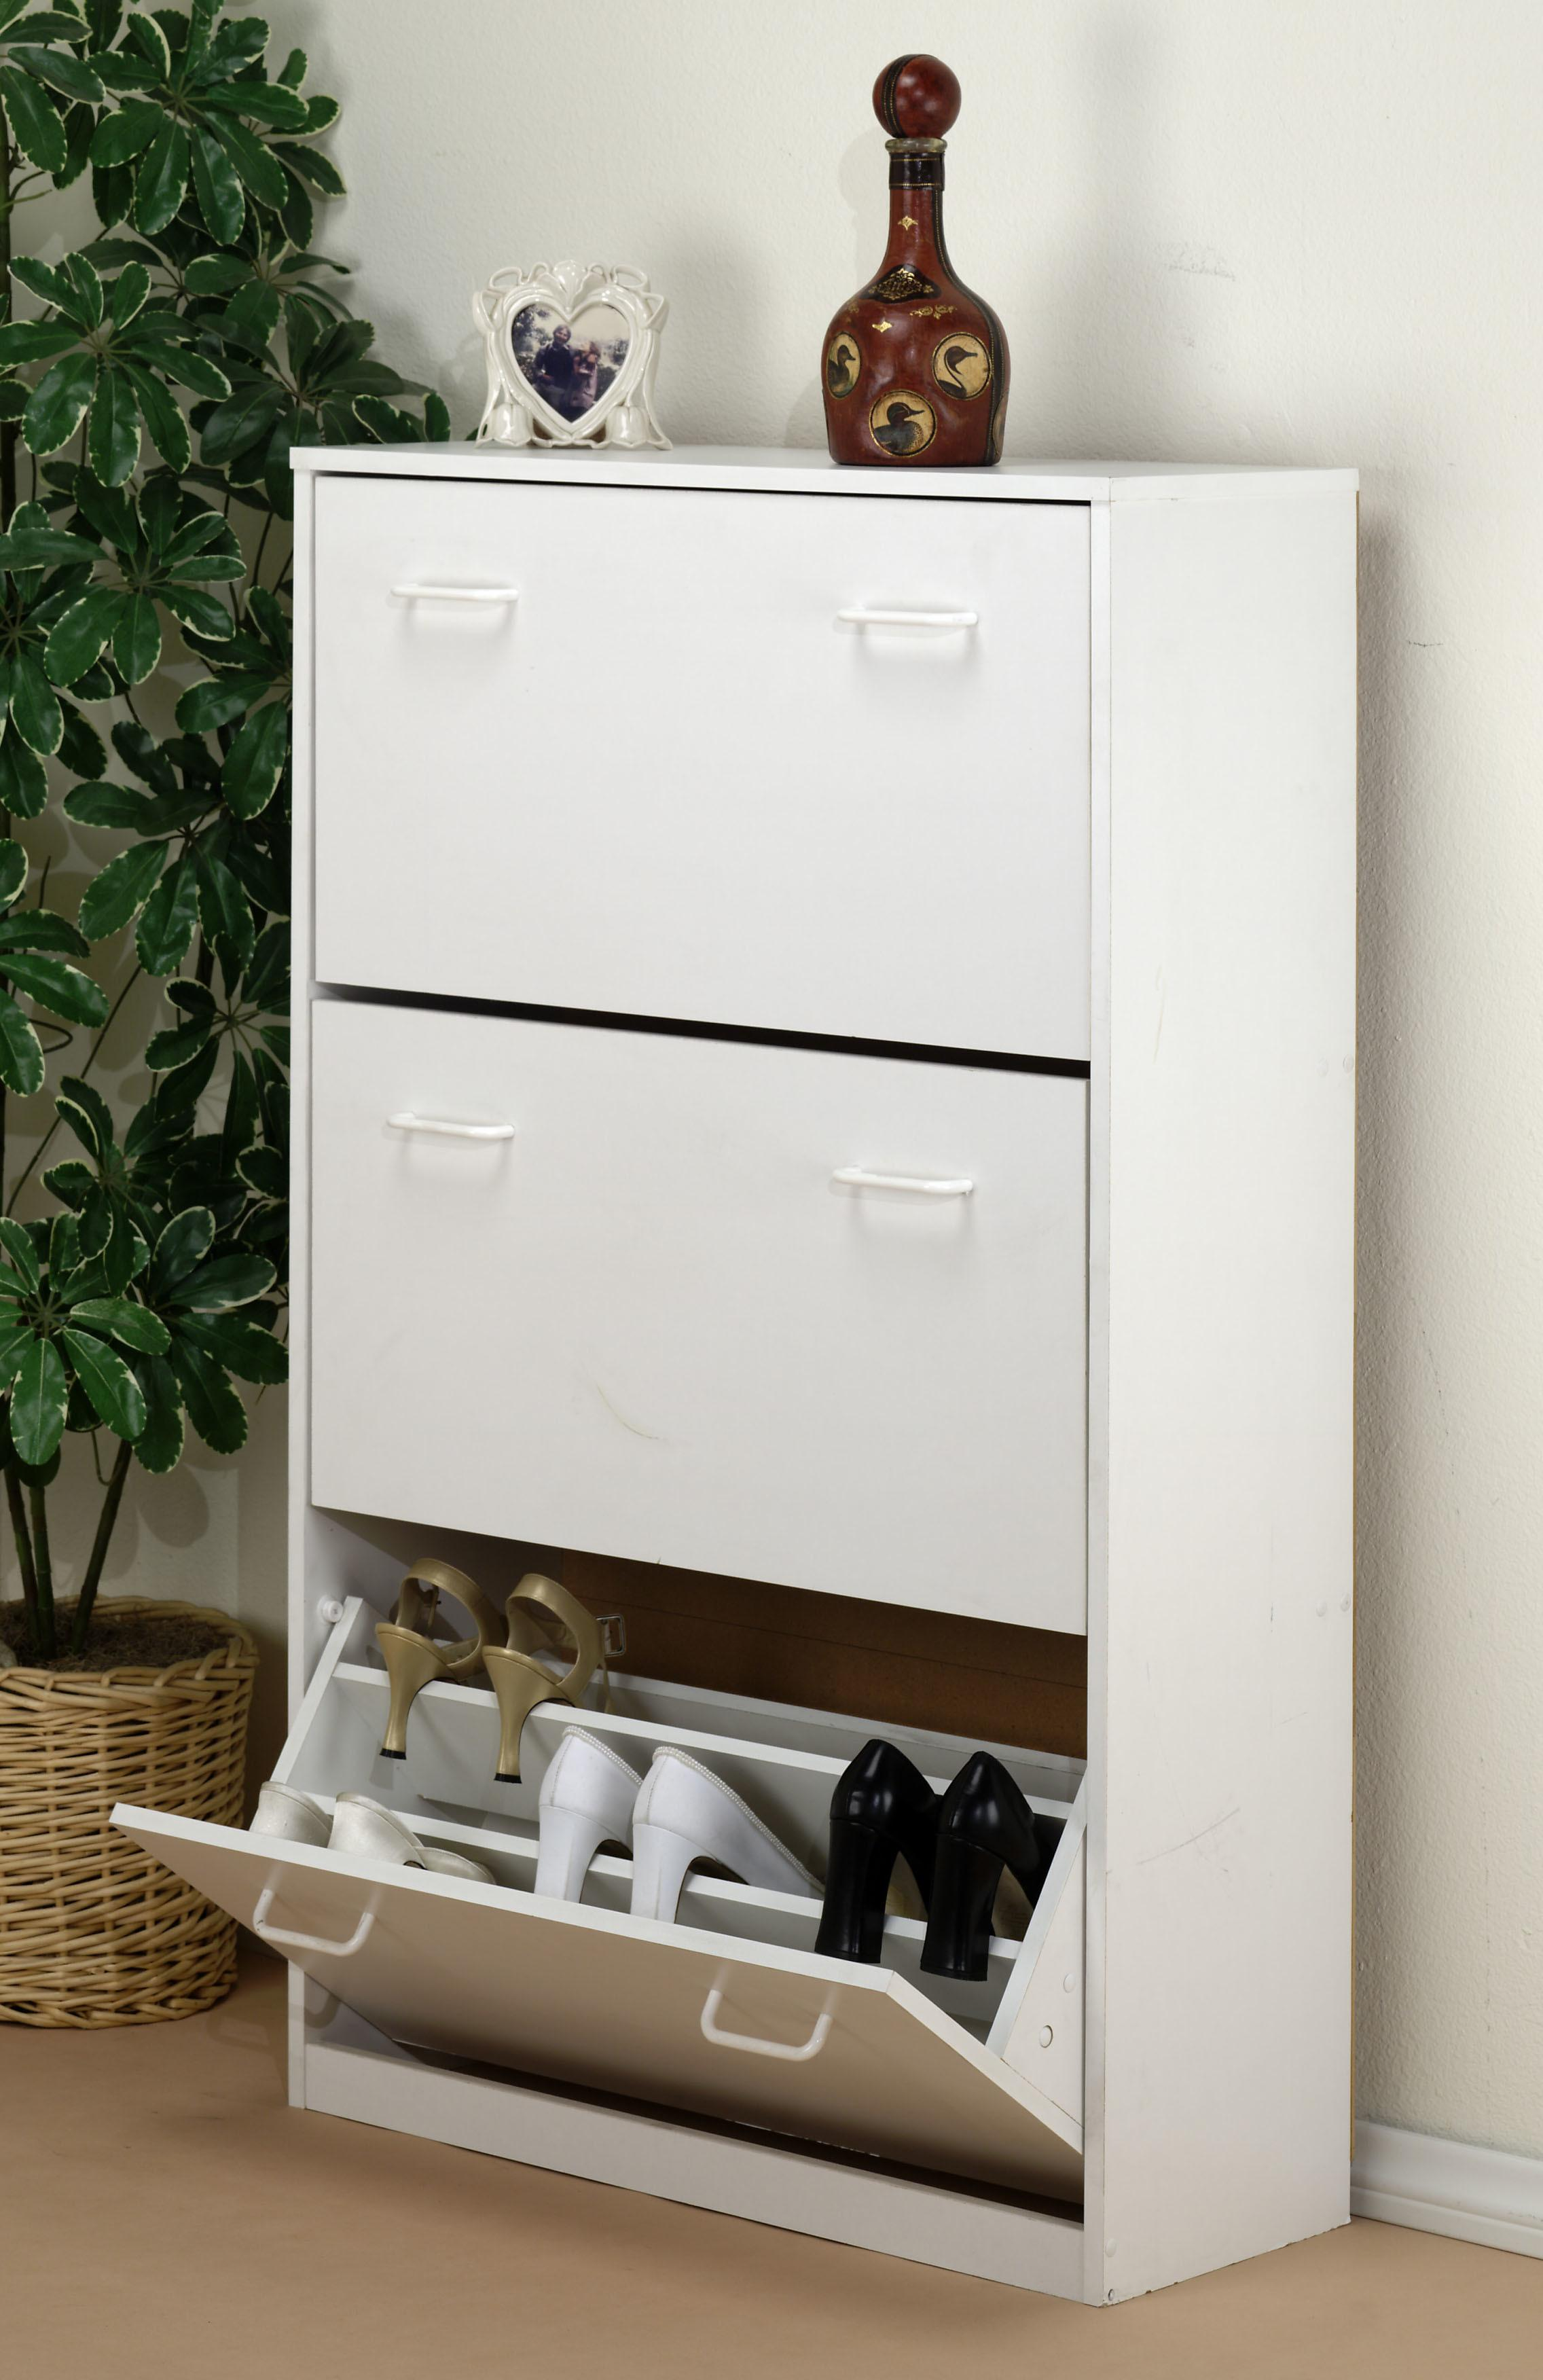 Diy Shoe Cabinet White Storage Wooden Shoes